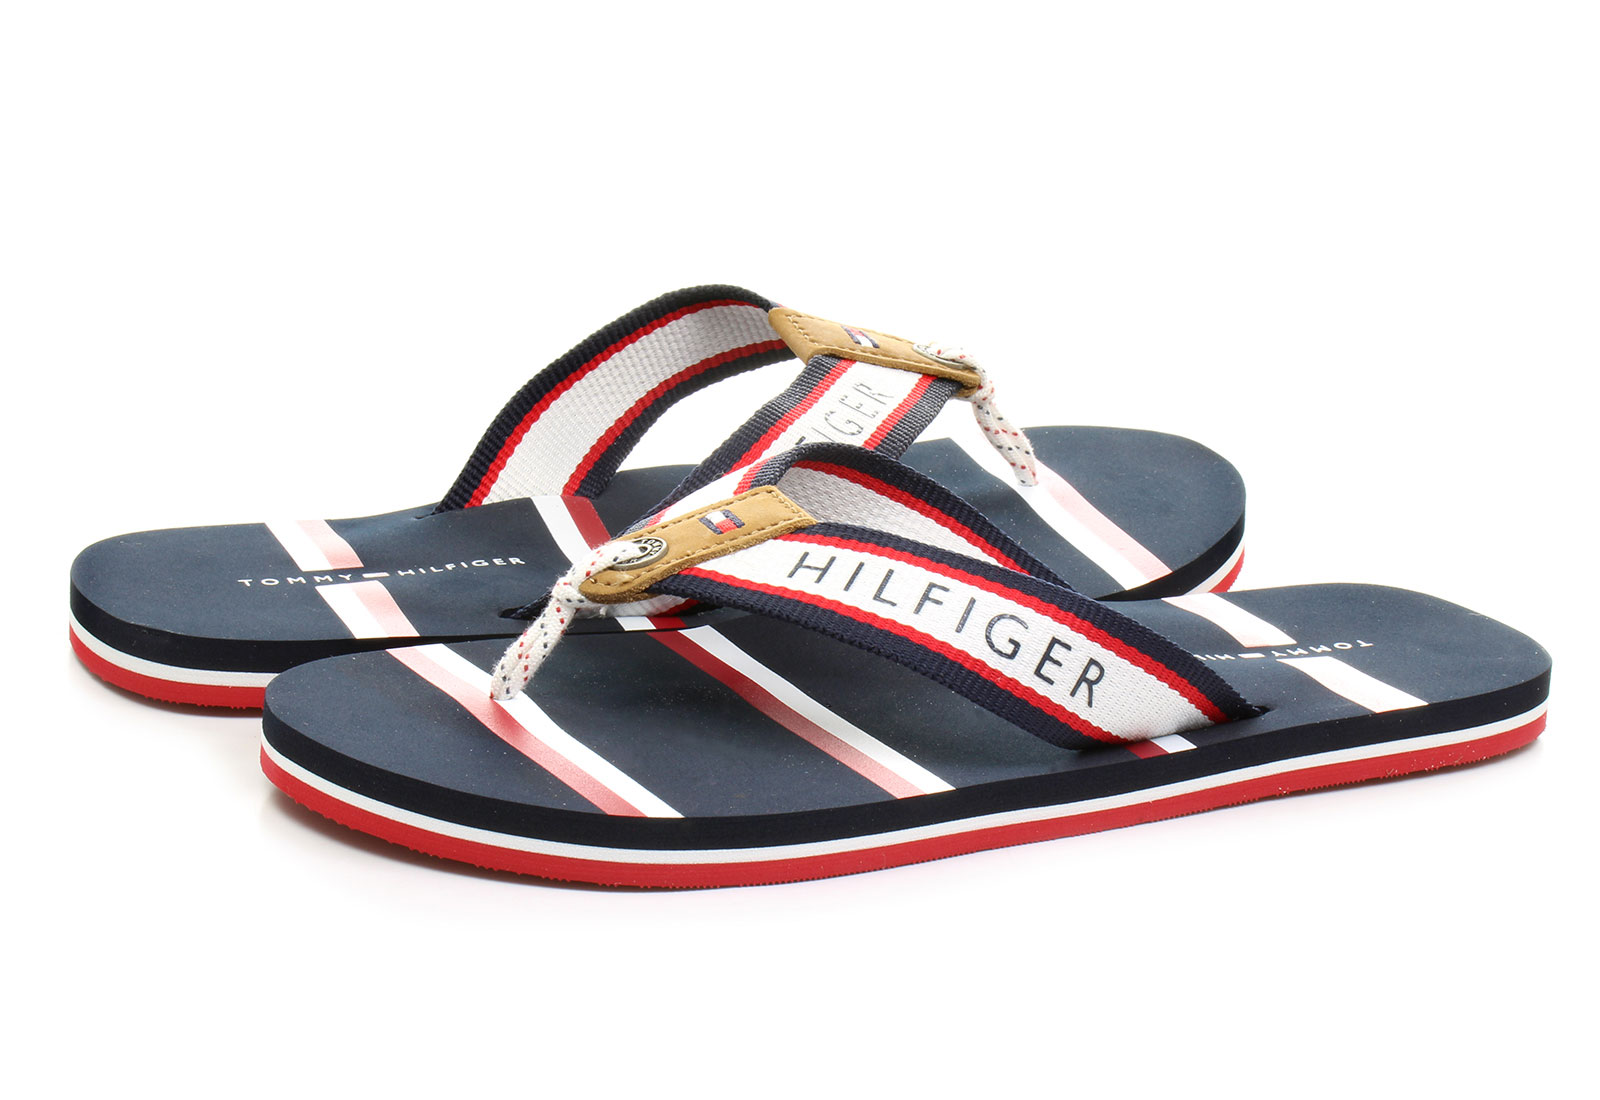 tommy hilfiger slippers banks 4d 16s 0932 403 online. Black Bedroom Furniture Sets. Home Design Ideas